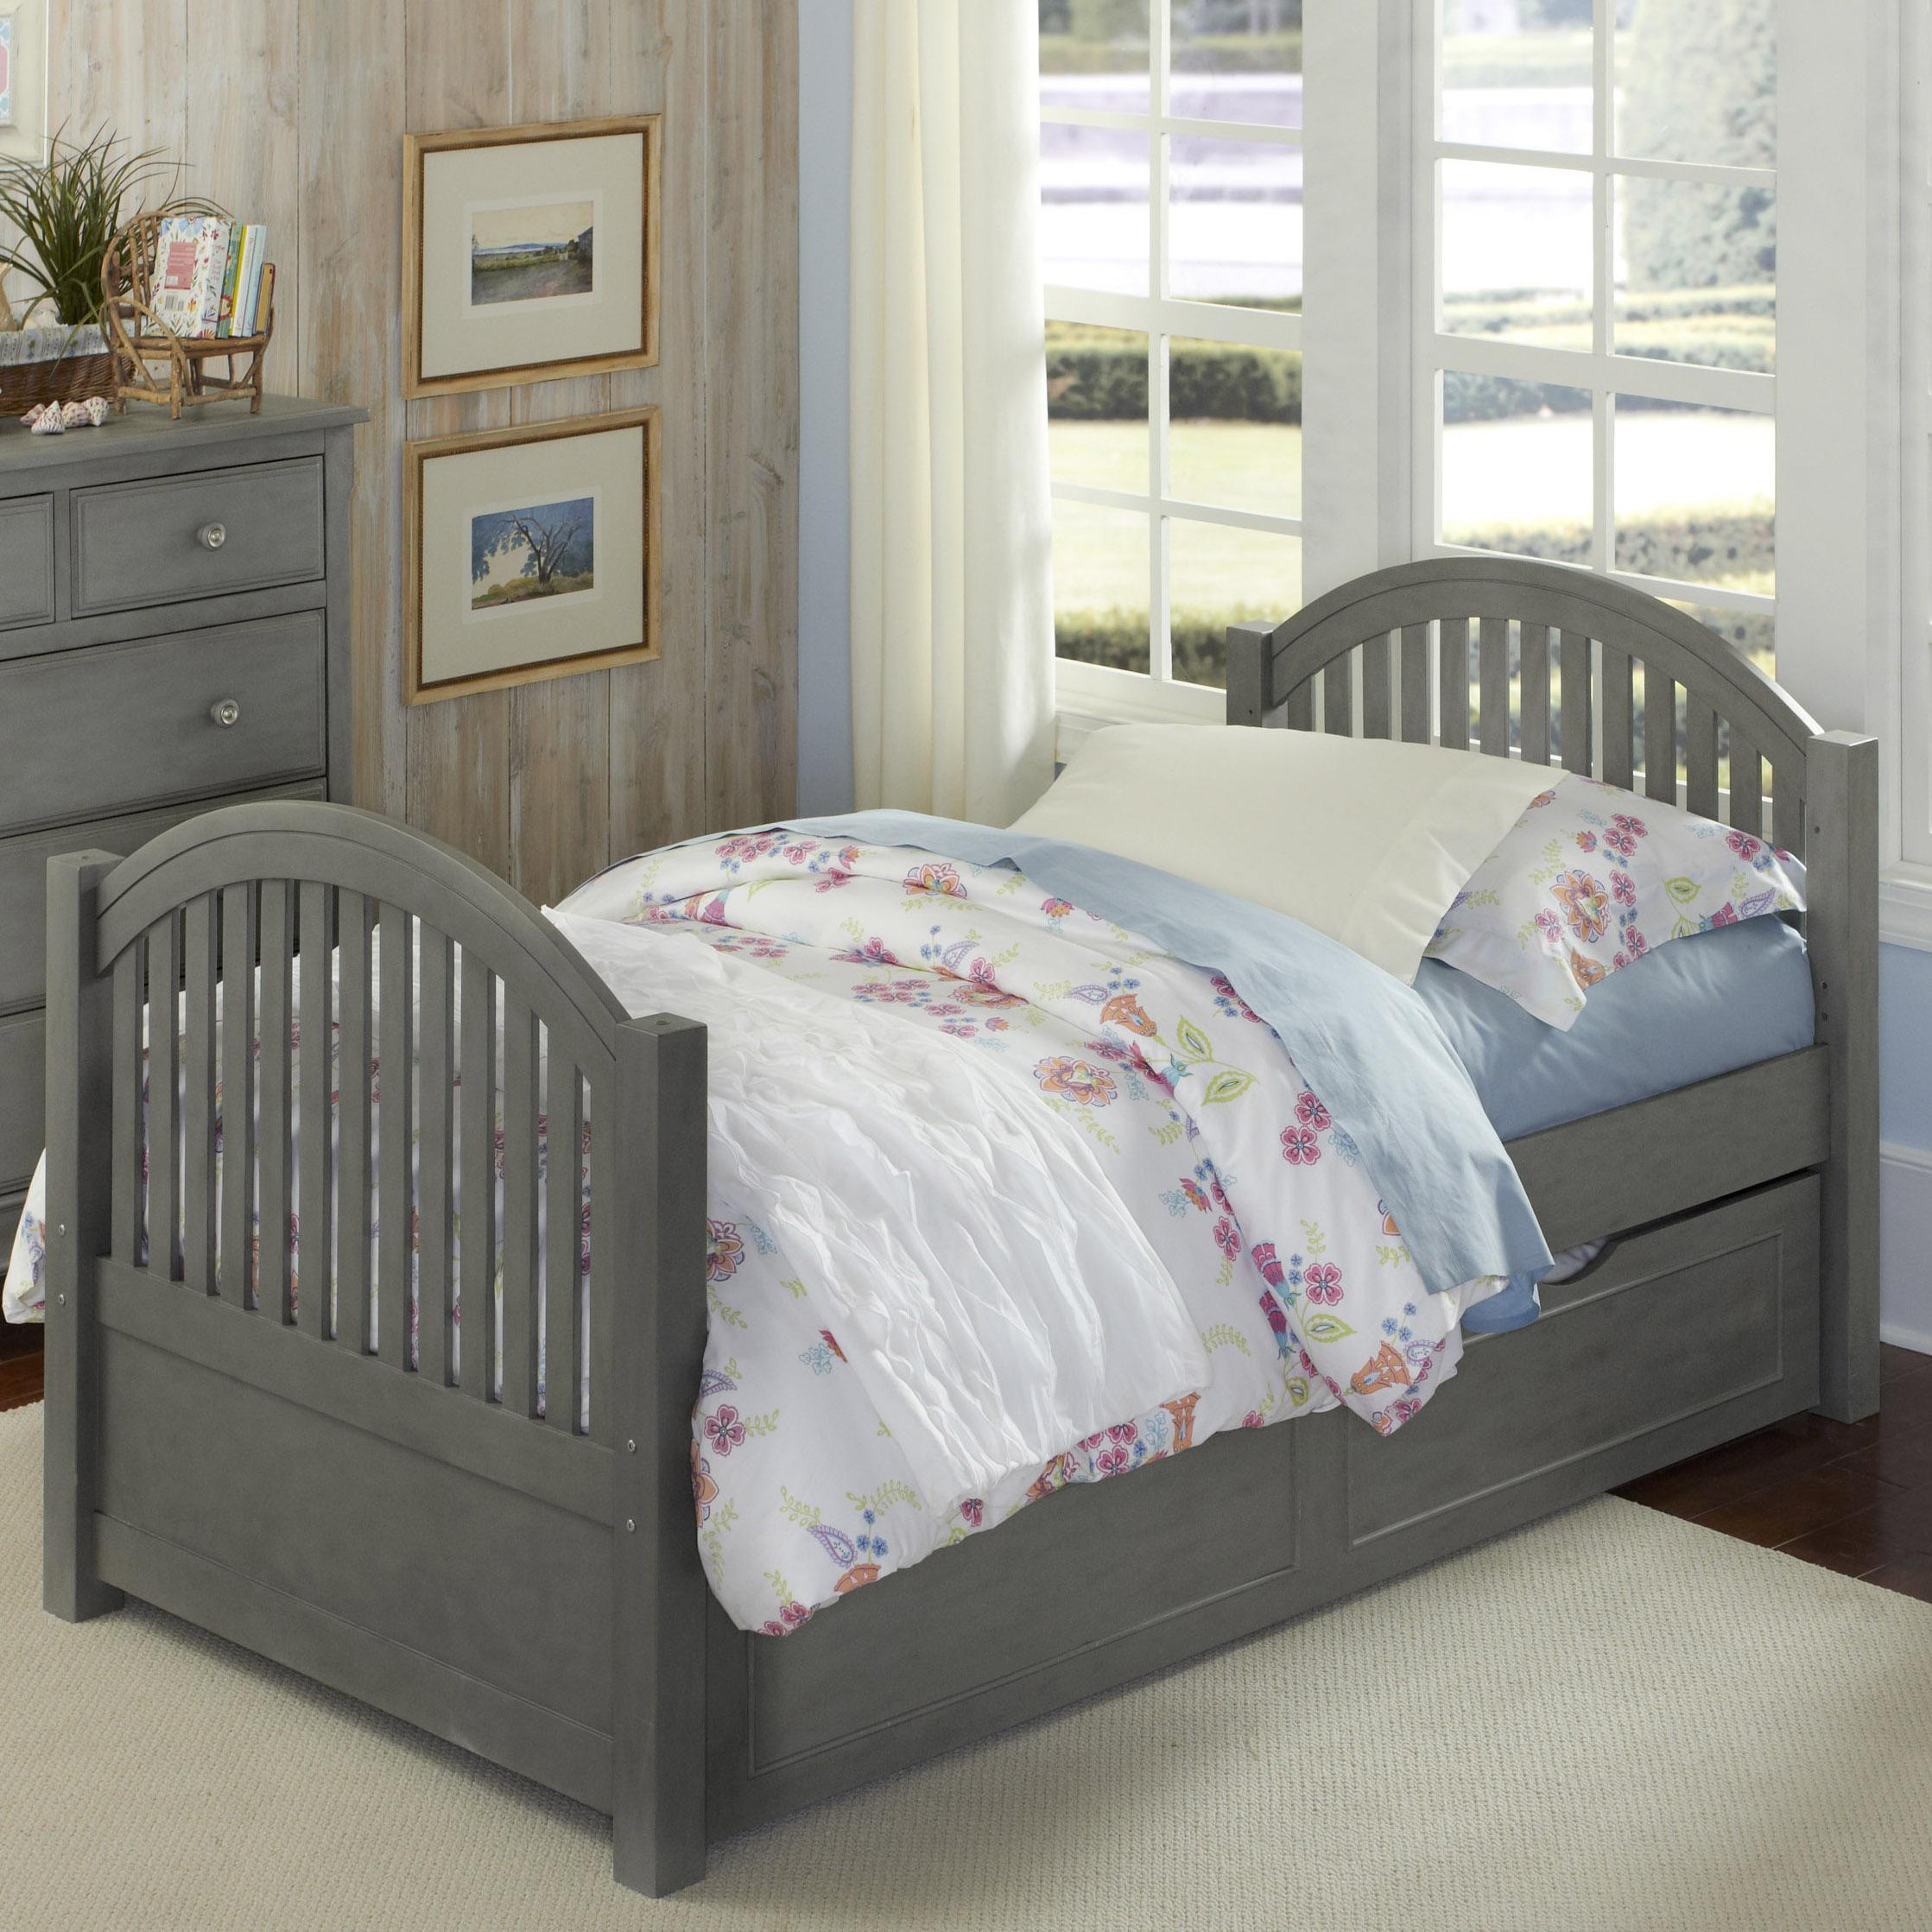 Lake House Adrian Twin Bed + Trundle by NE Kids at Dunk & Bright Furniture